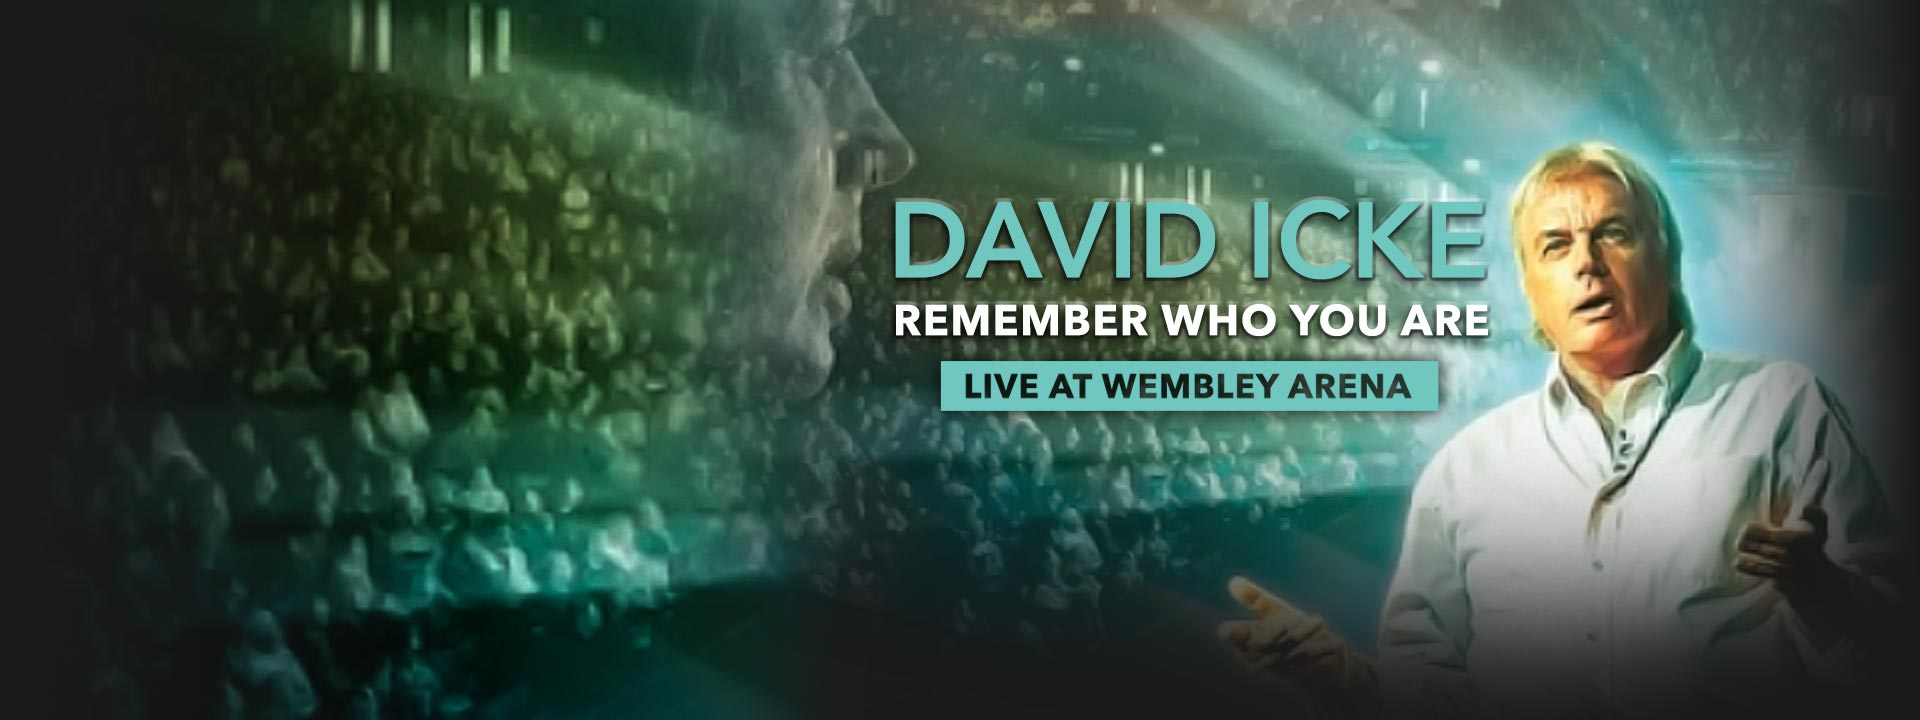 David Icke - Remember Who You Are